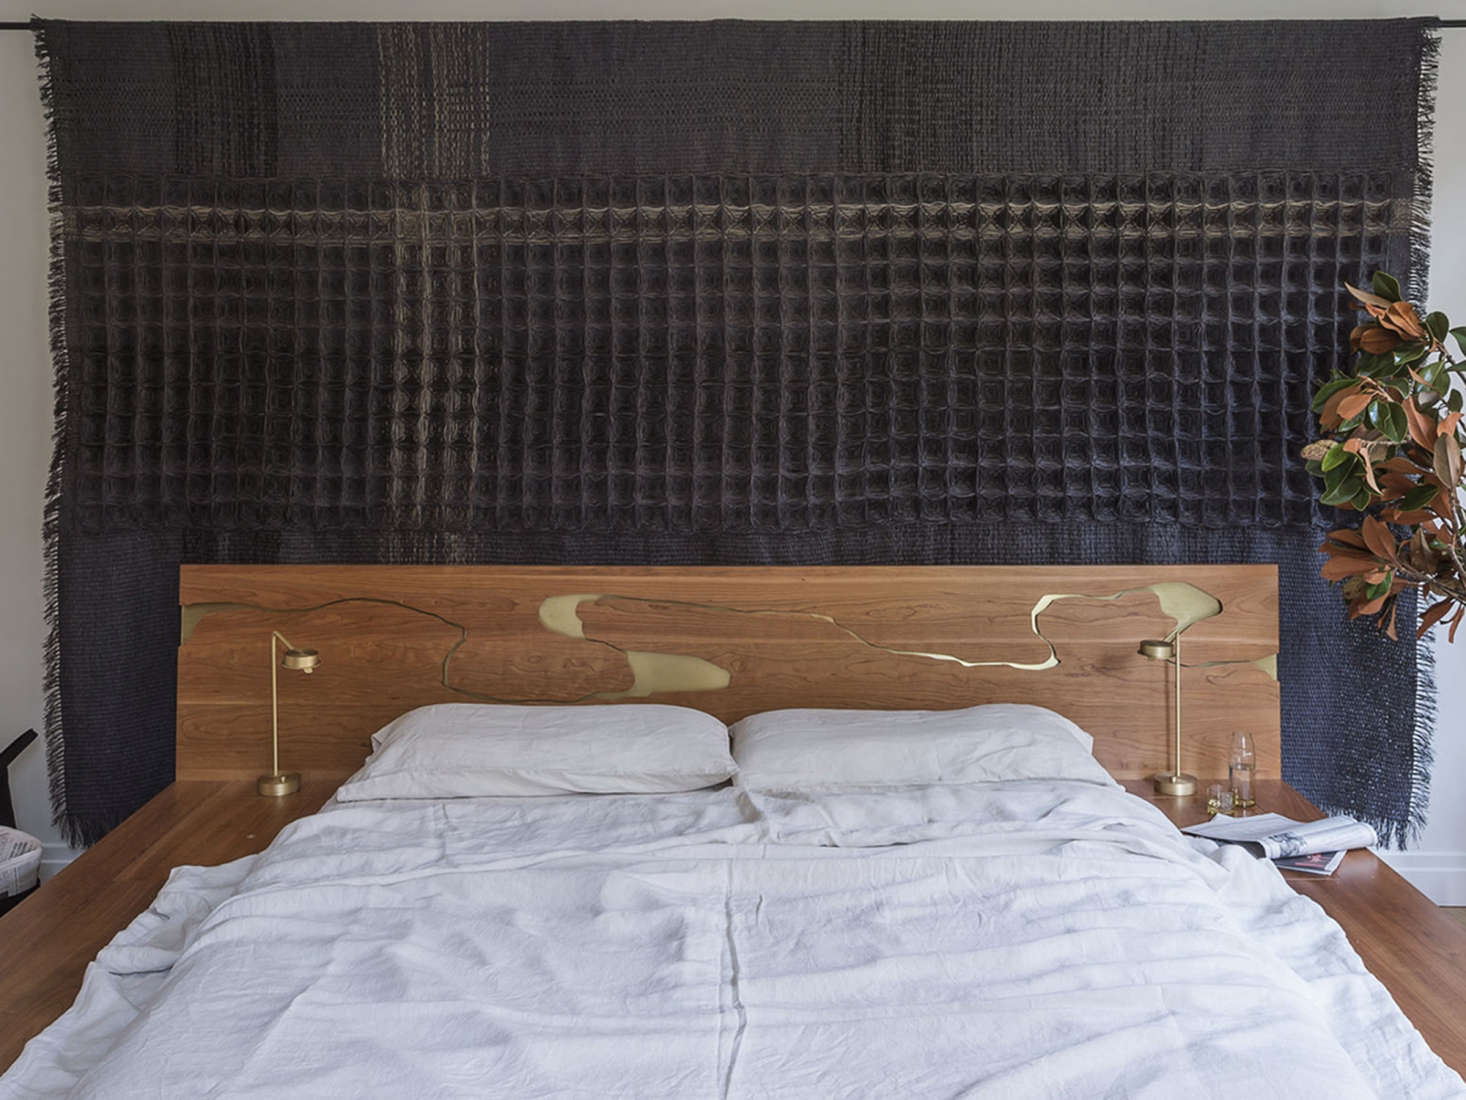 Asher Israel bed frame in an apartment designed by Workstead, Matthew Williams photo | Remodeista